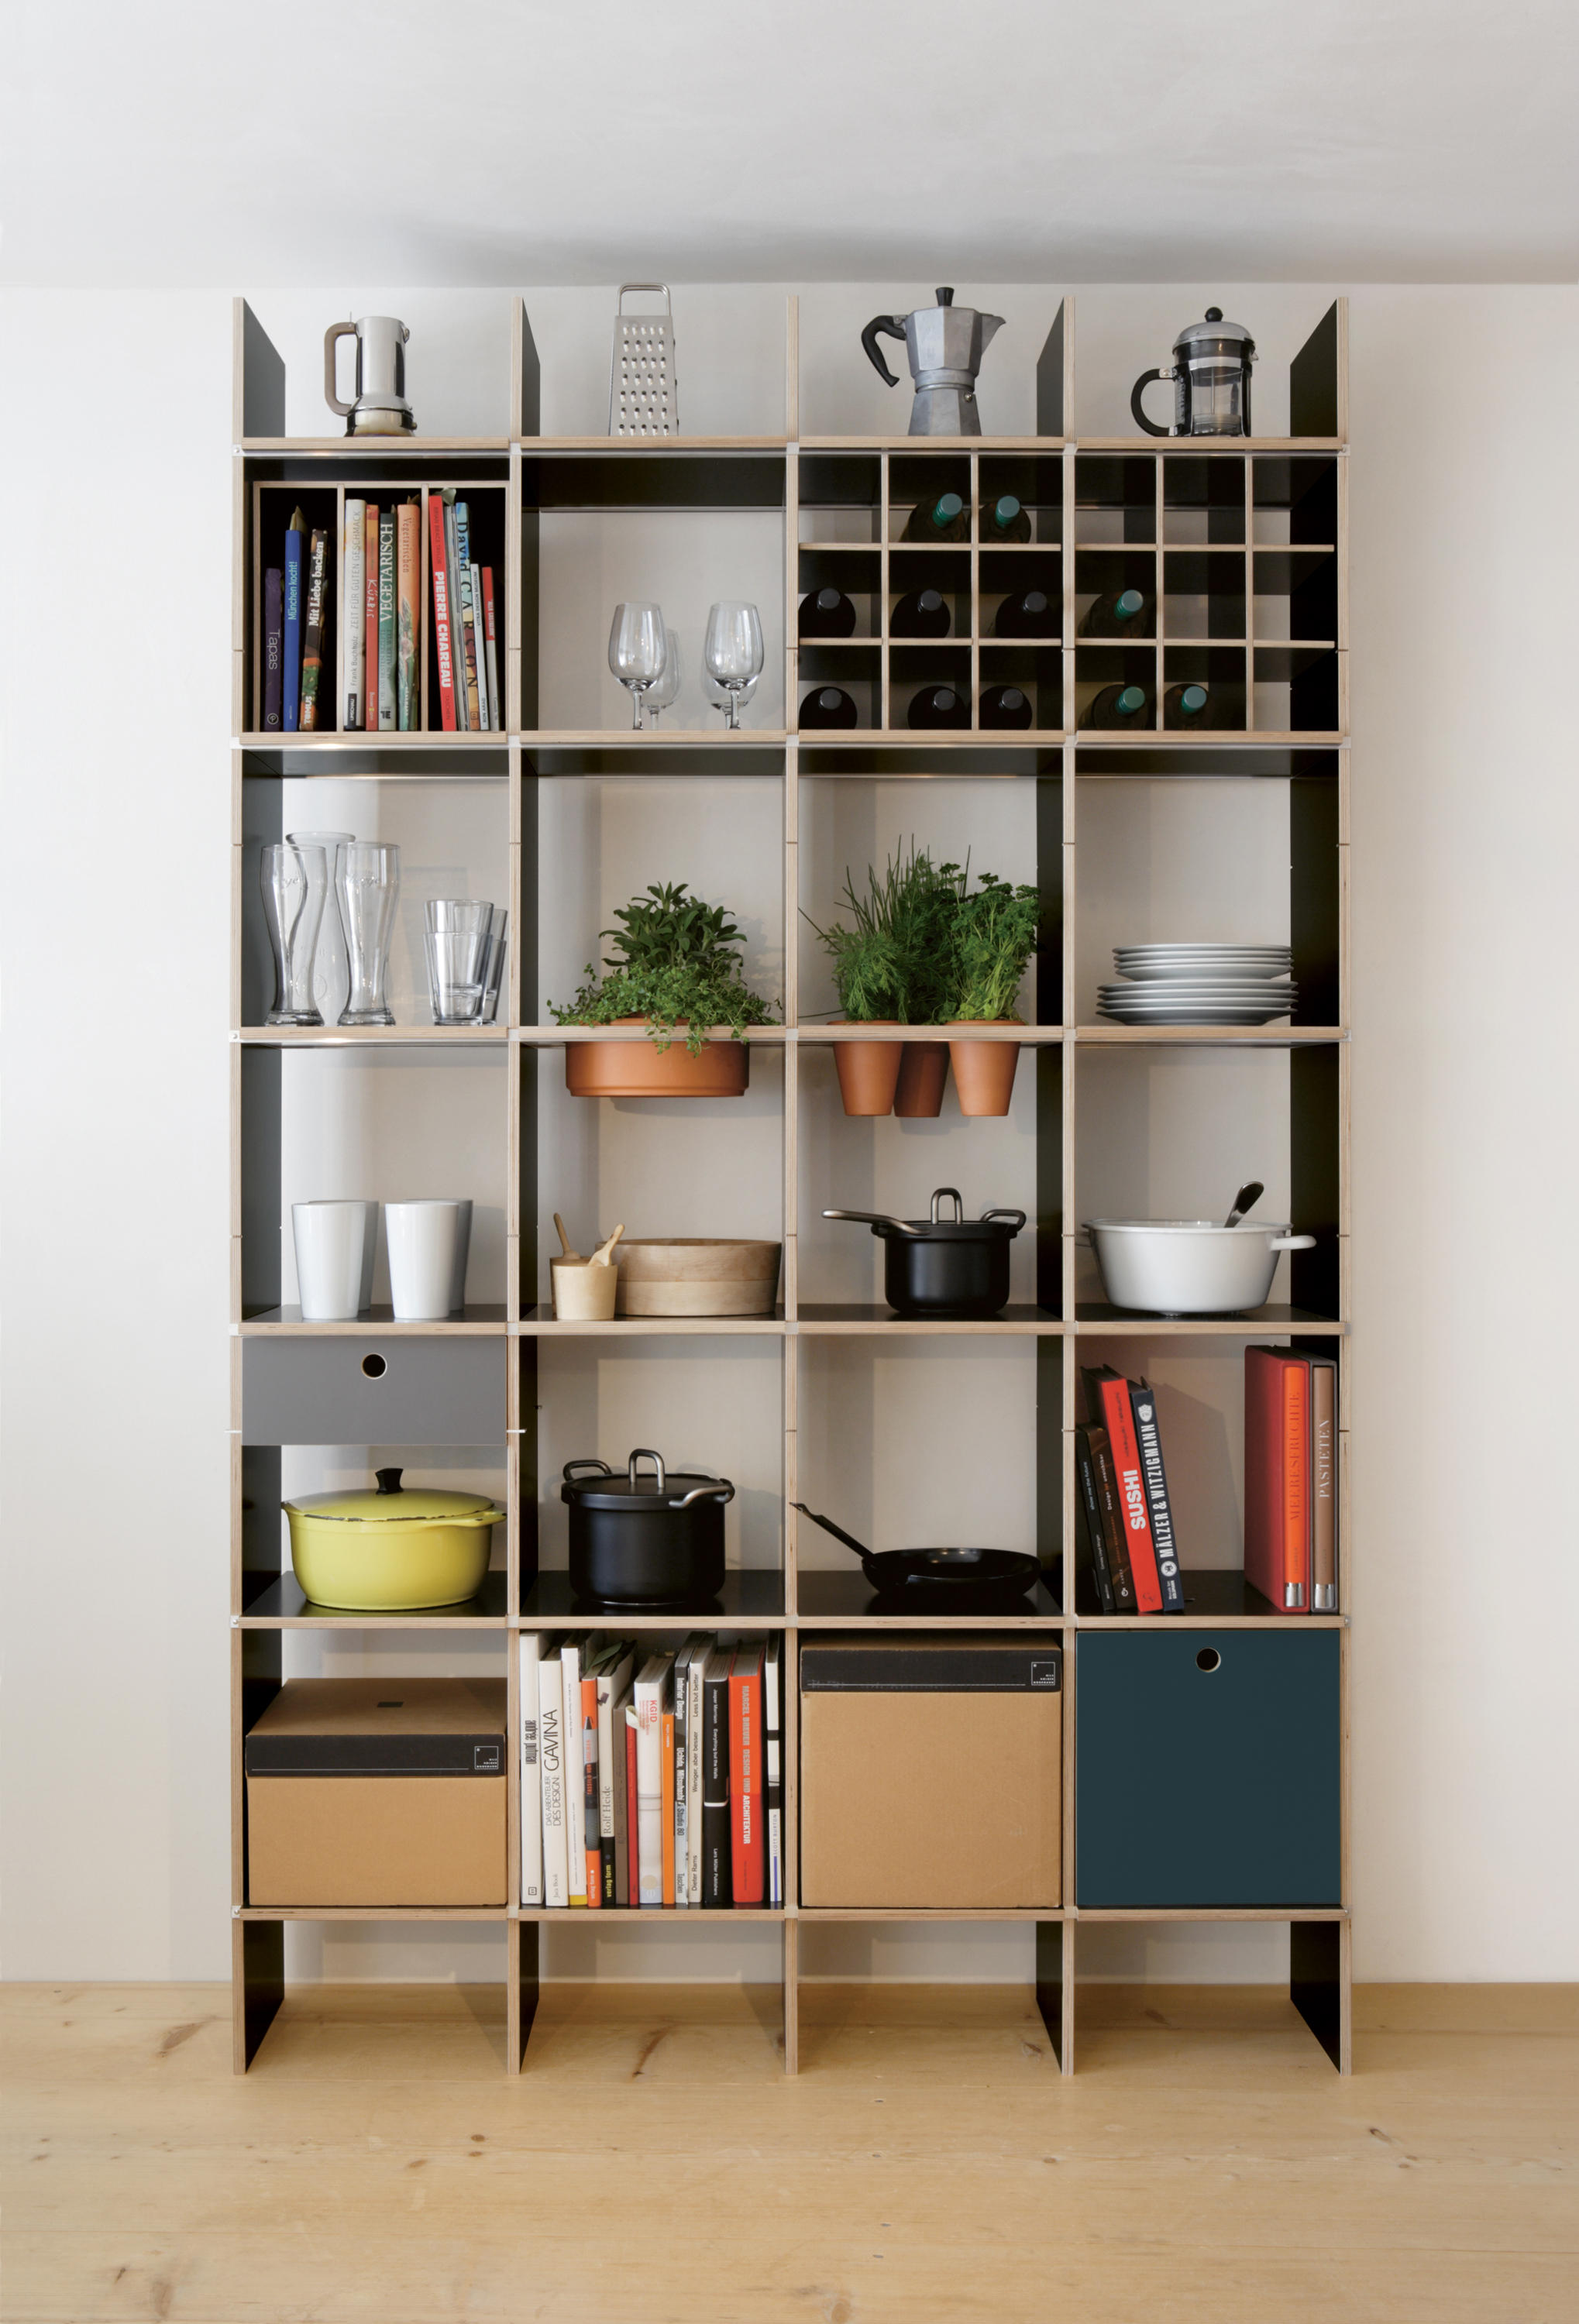 fnp kitchen shelving by moormann architonic. Black Bedroom Furniture Sets. Home Design Ideas